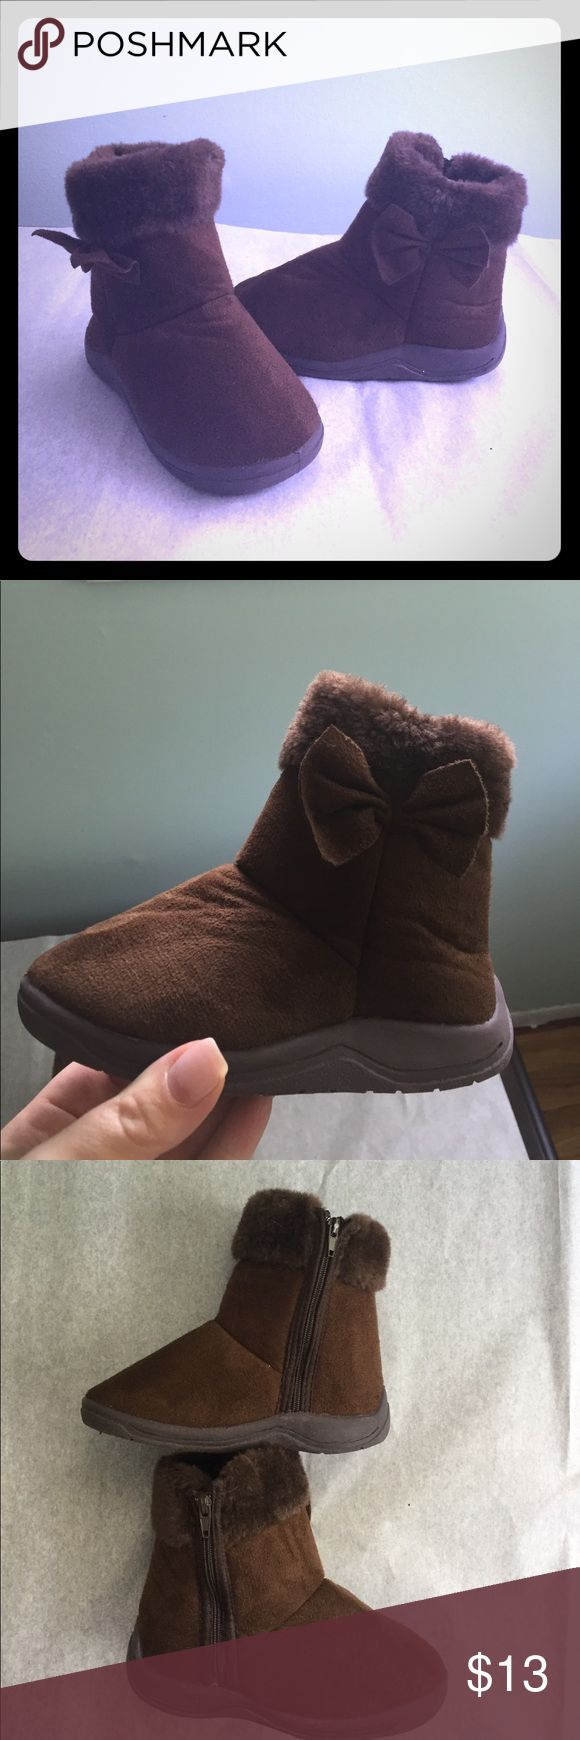 """Toddler winter boots NWOT Never worn! Bought at end of season but my daughter grew two sizes so these never fit. Box was thrown away when we moved. Adorable booties with side bow and inside zip for easy wear. See last photo as there is a small spot where the """"fur"""" is missing but it's on inside and isn't noticeable when worn. If you sew you could stitch it up but I'm not very handy with needle and thread 😋 Shoes Boots"""